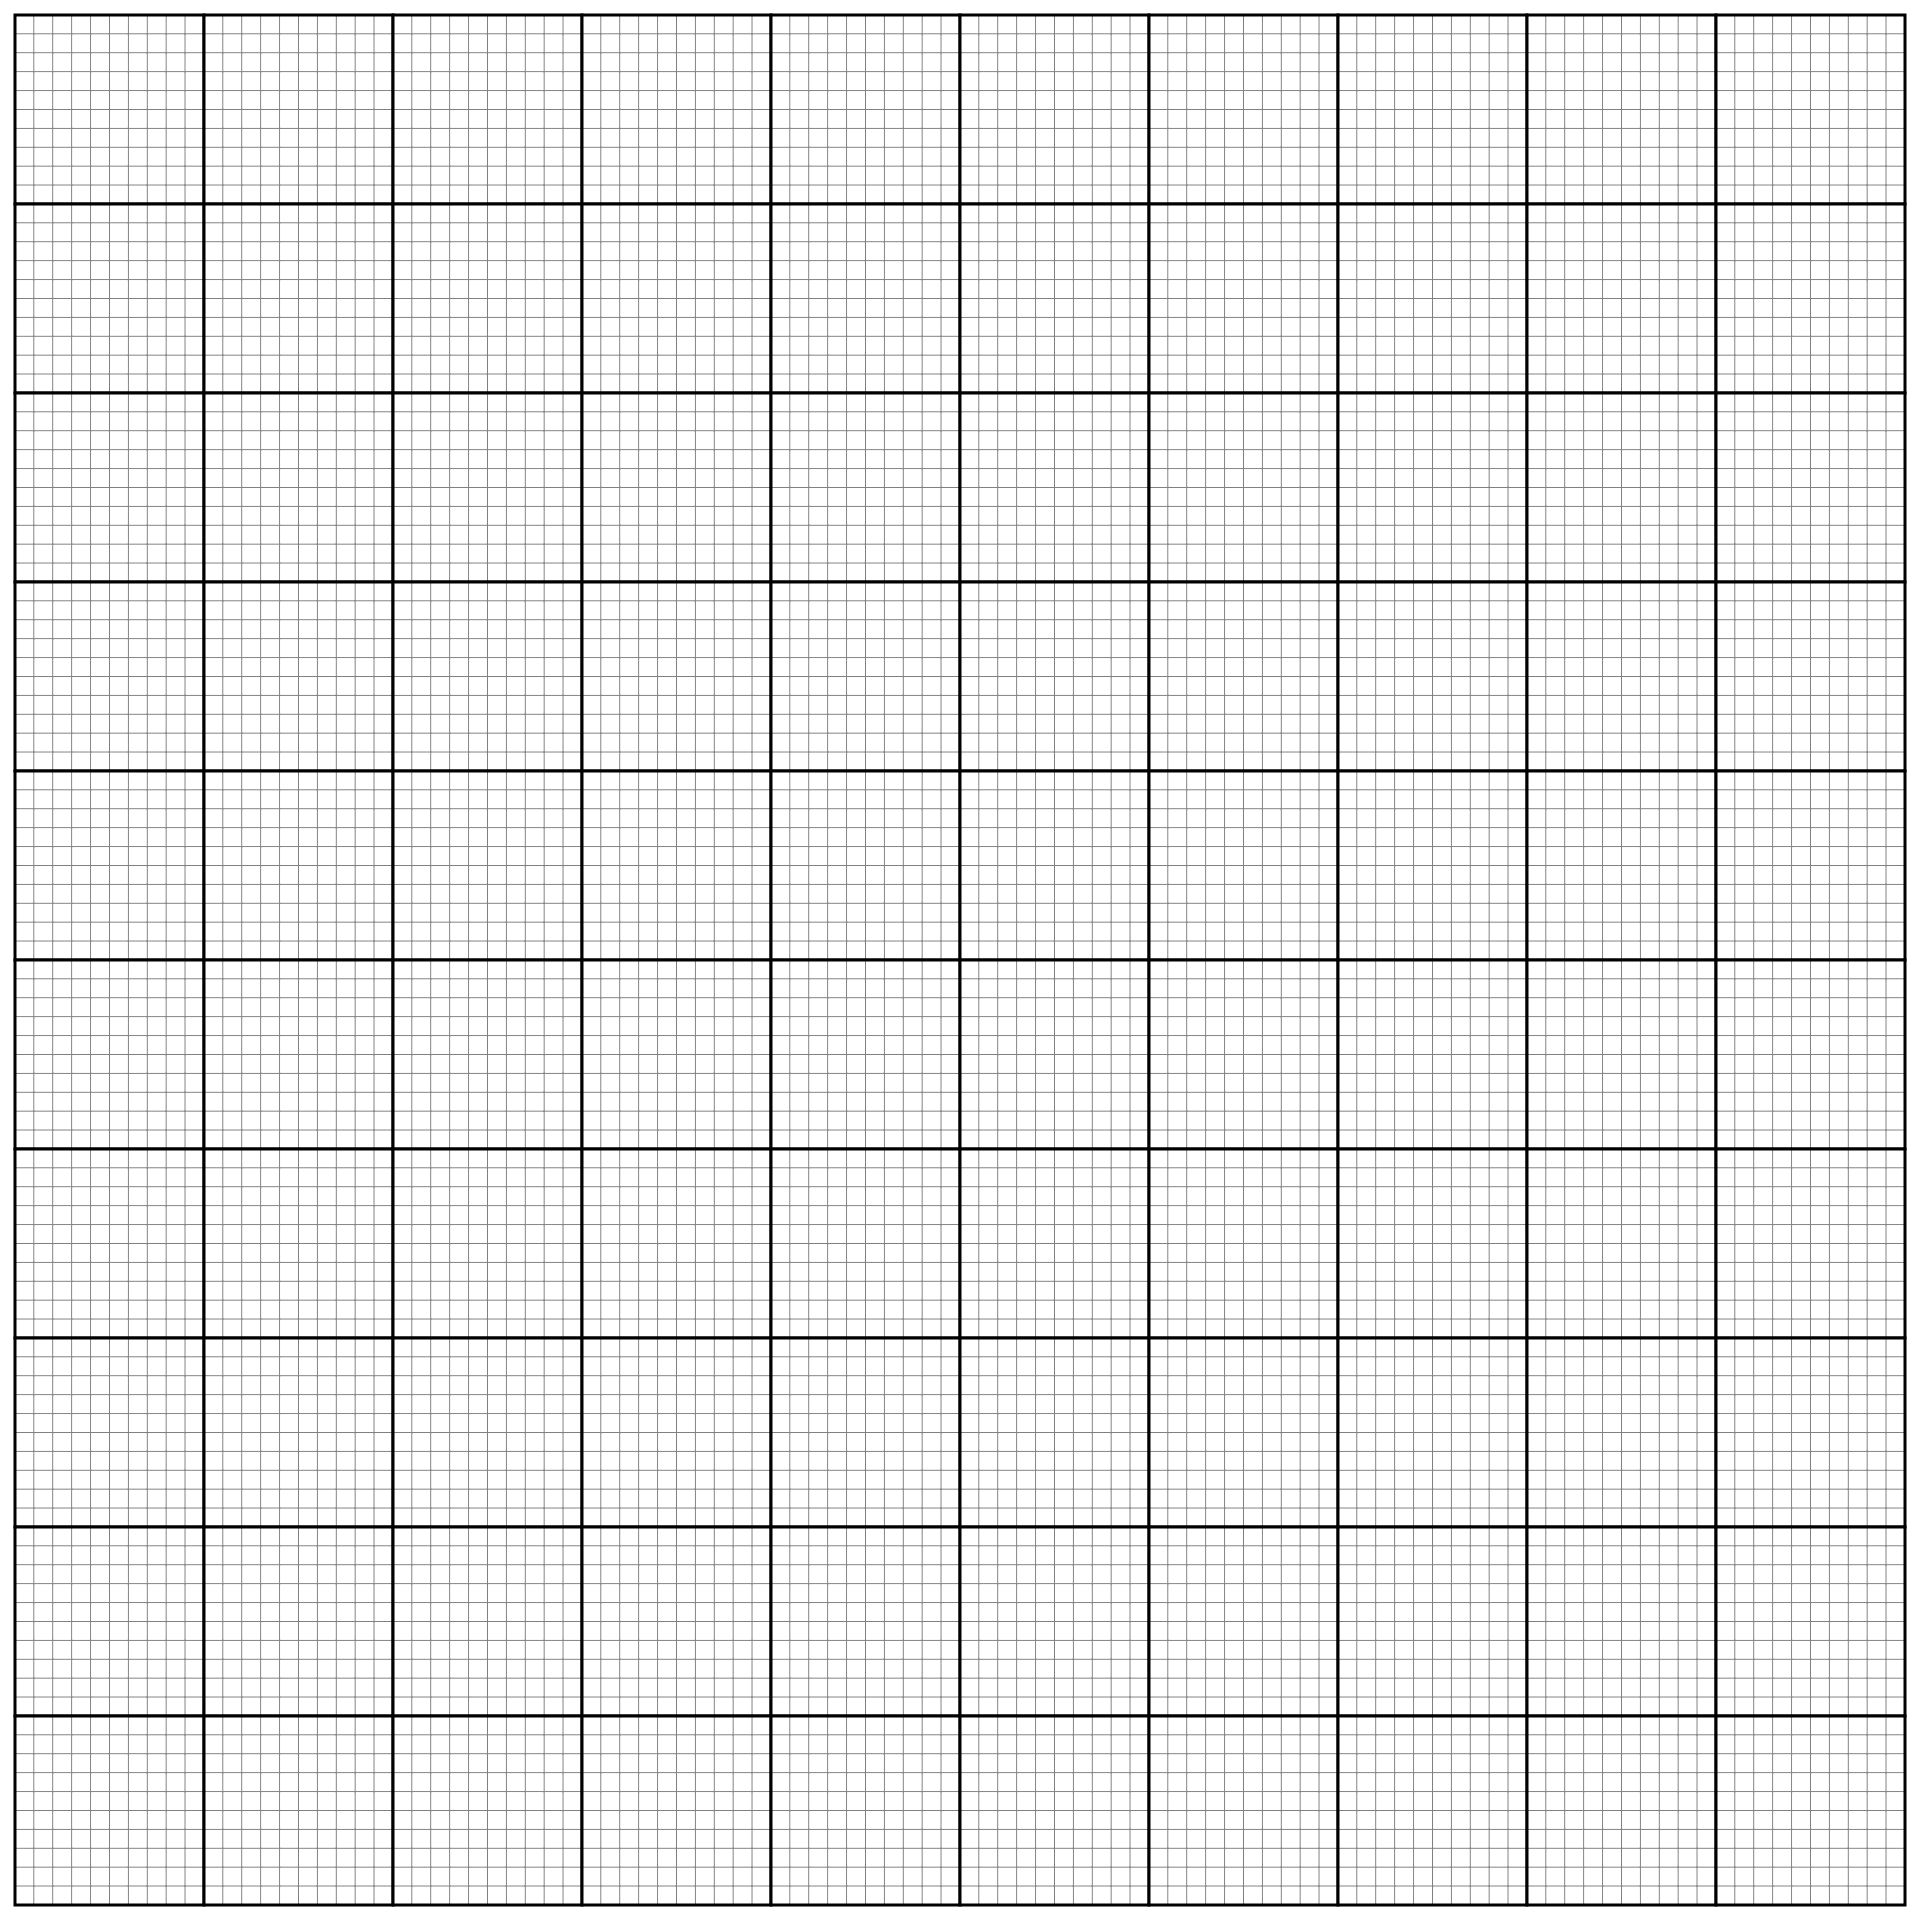 5 Best Images Of 100 Grid Paper Printable Grid With 100